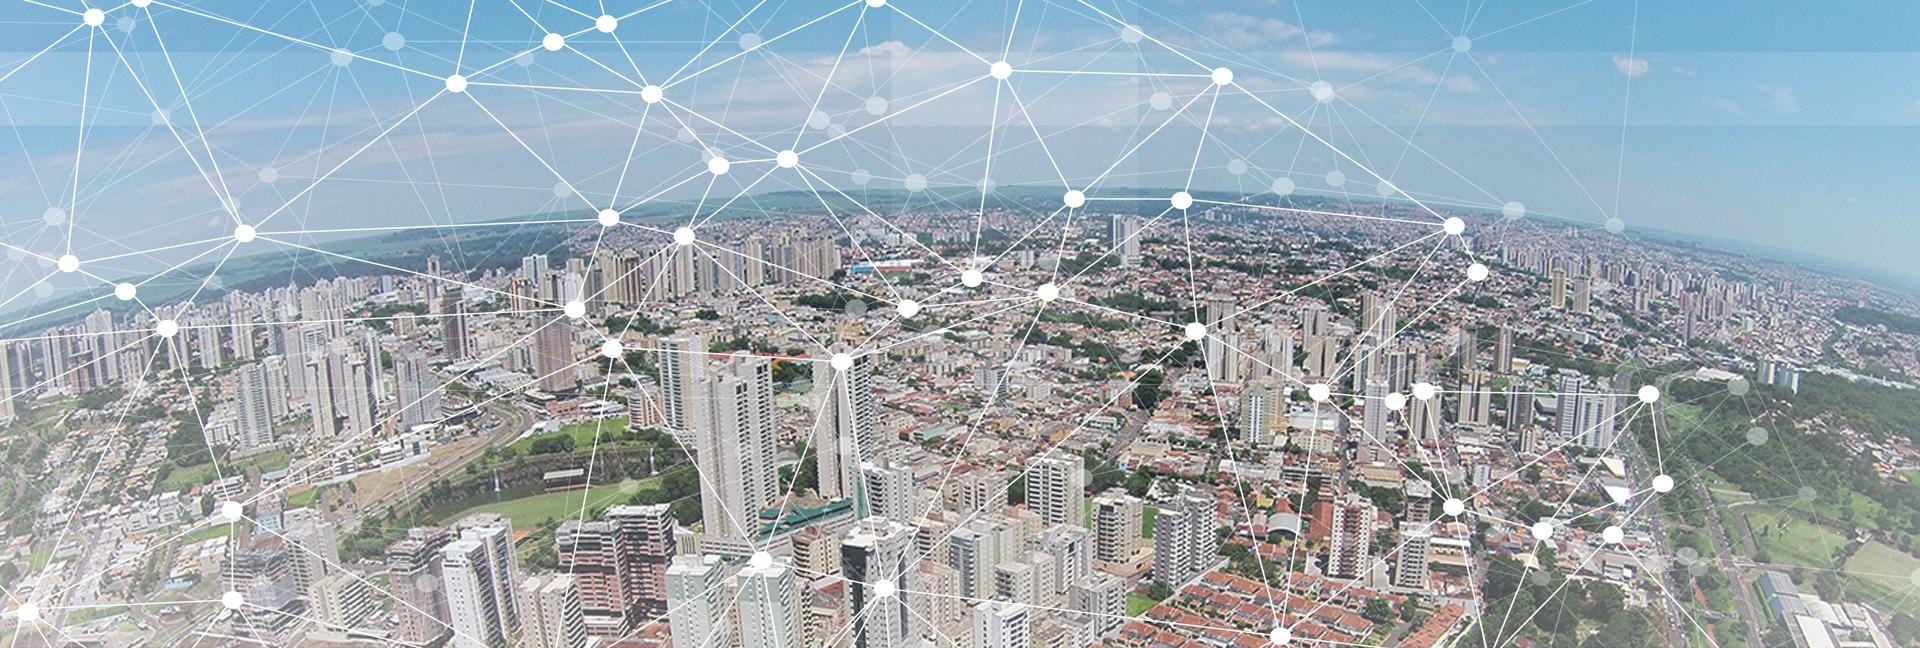 The purpose of this mapping is to promote the ecosystem of entrepreneurship and innovation of Ribeirao Preto and region, besides to connect the entrepreneurs in order to generate integration, new partnerships and innovative projects.